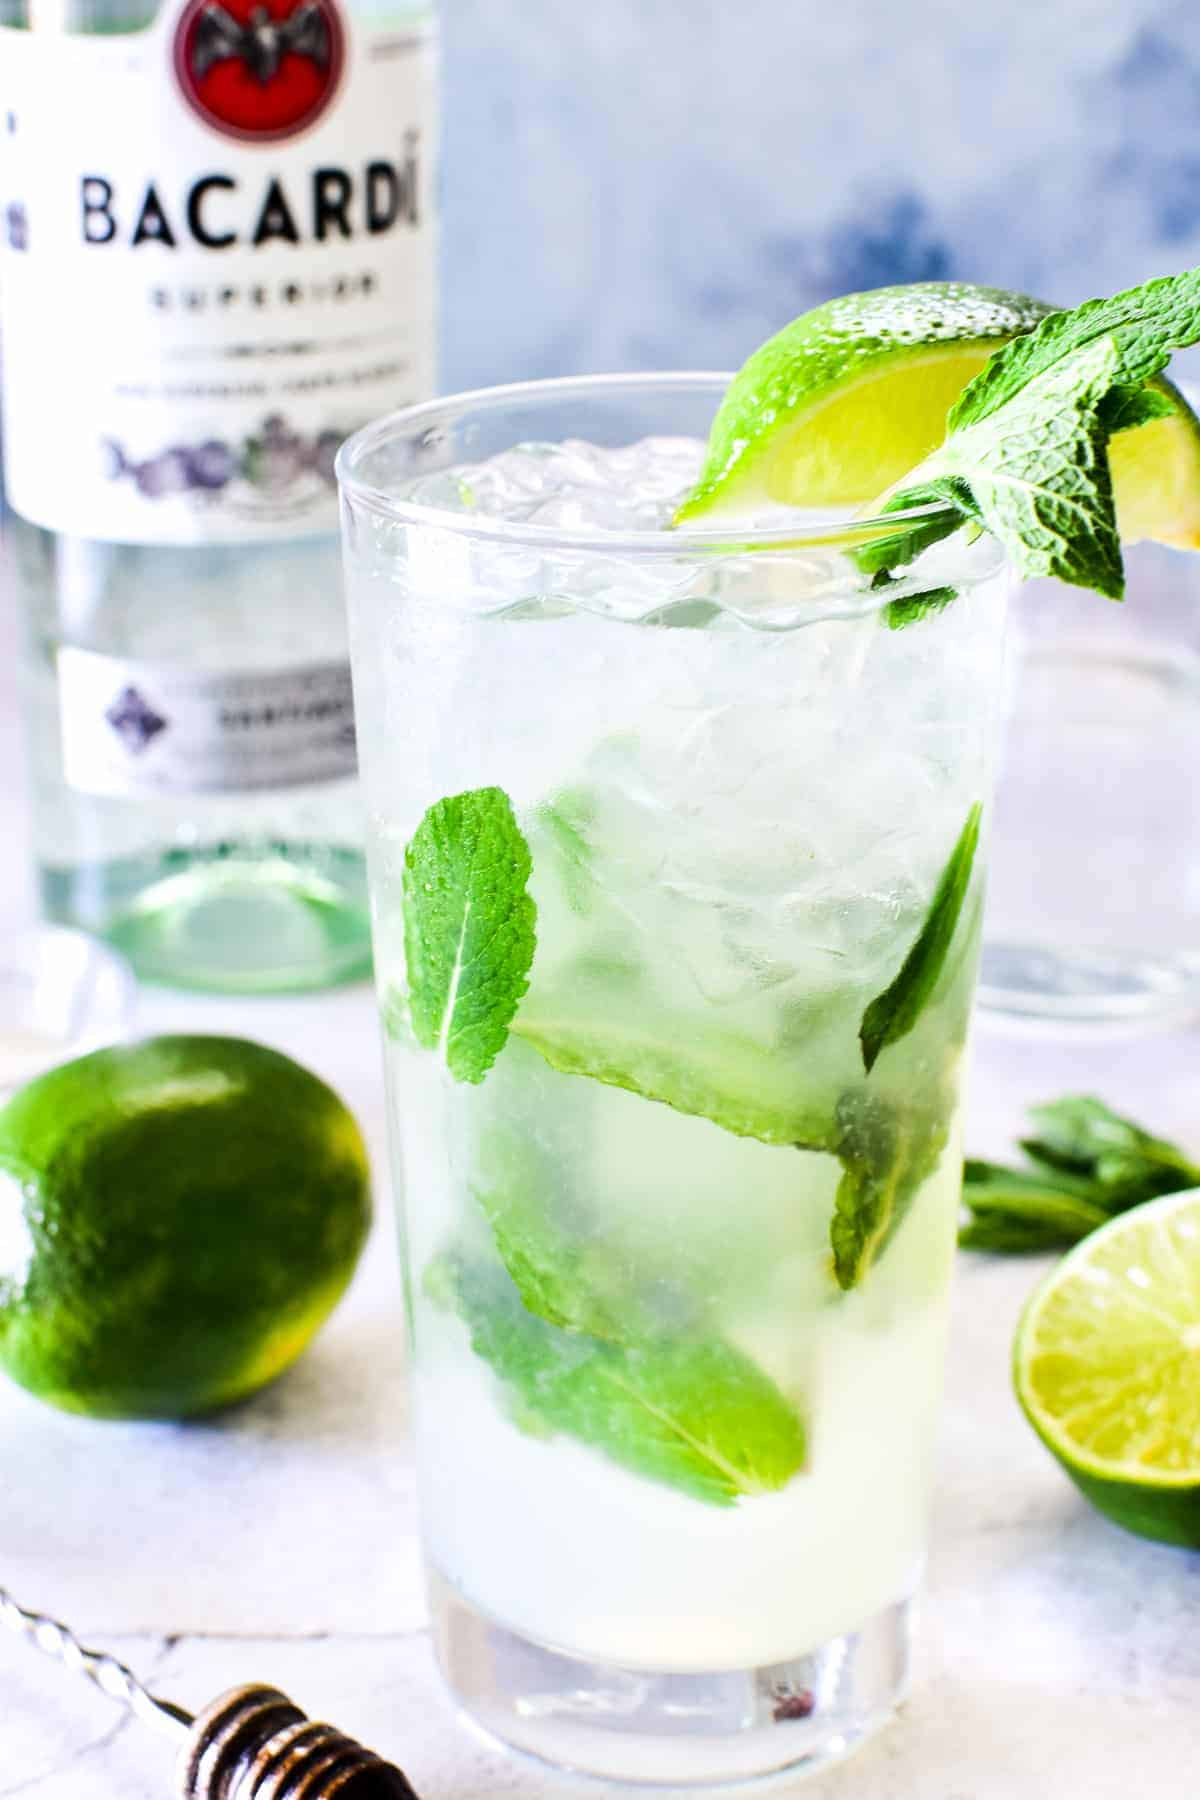 Mojito in glass with lime wedge and fresh mint